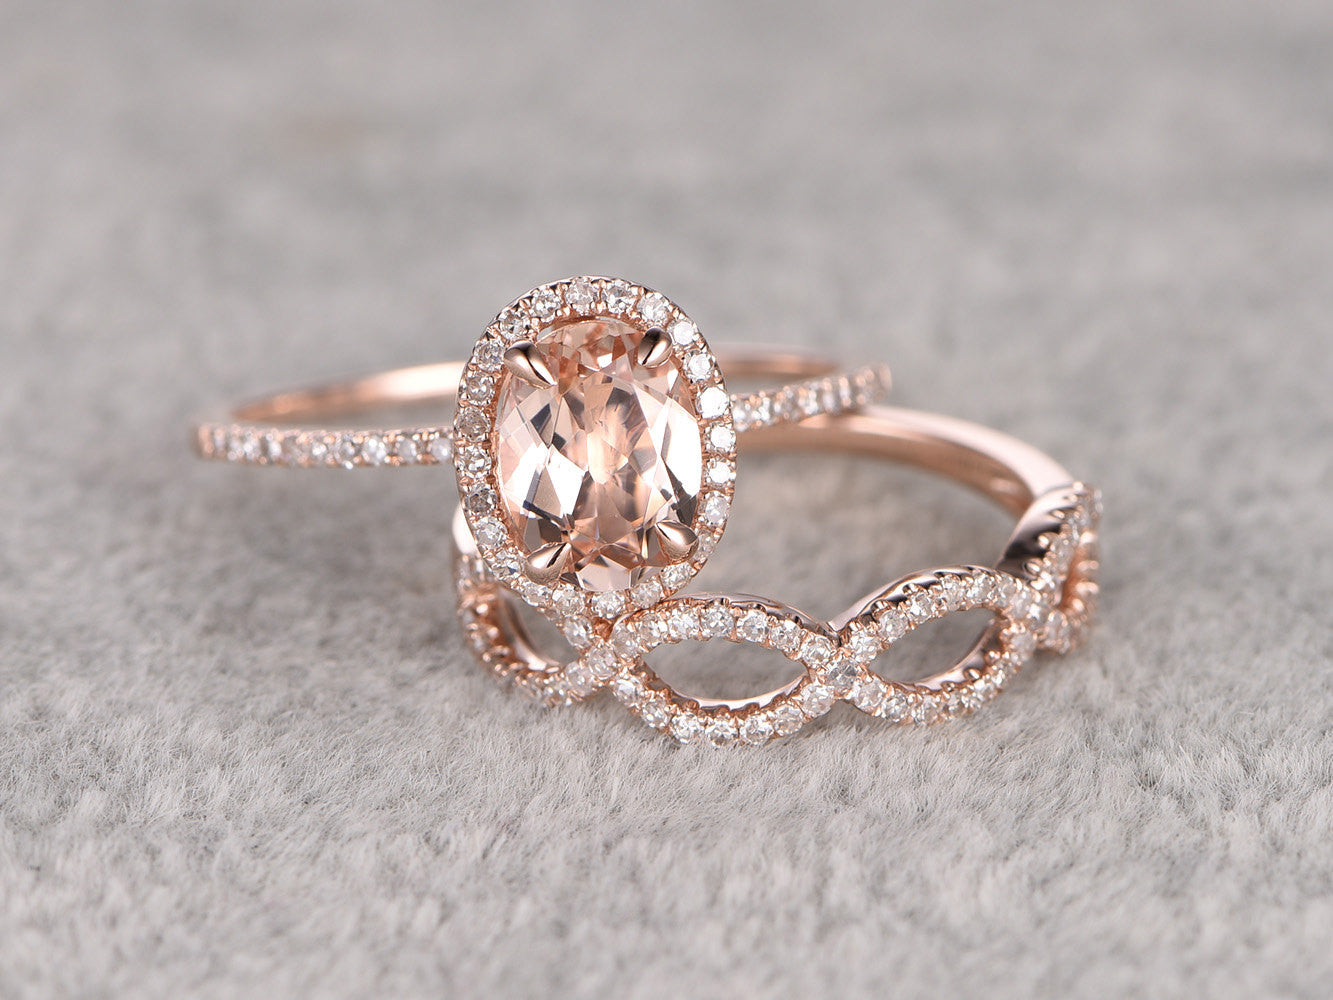 2pcs Morganite Bridal Ring Set,Engagement ring Rose gold,Diamond wedding band,14k,6x8mm Oval Cut,Promise Ring,Loop curved matching band